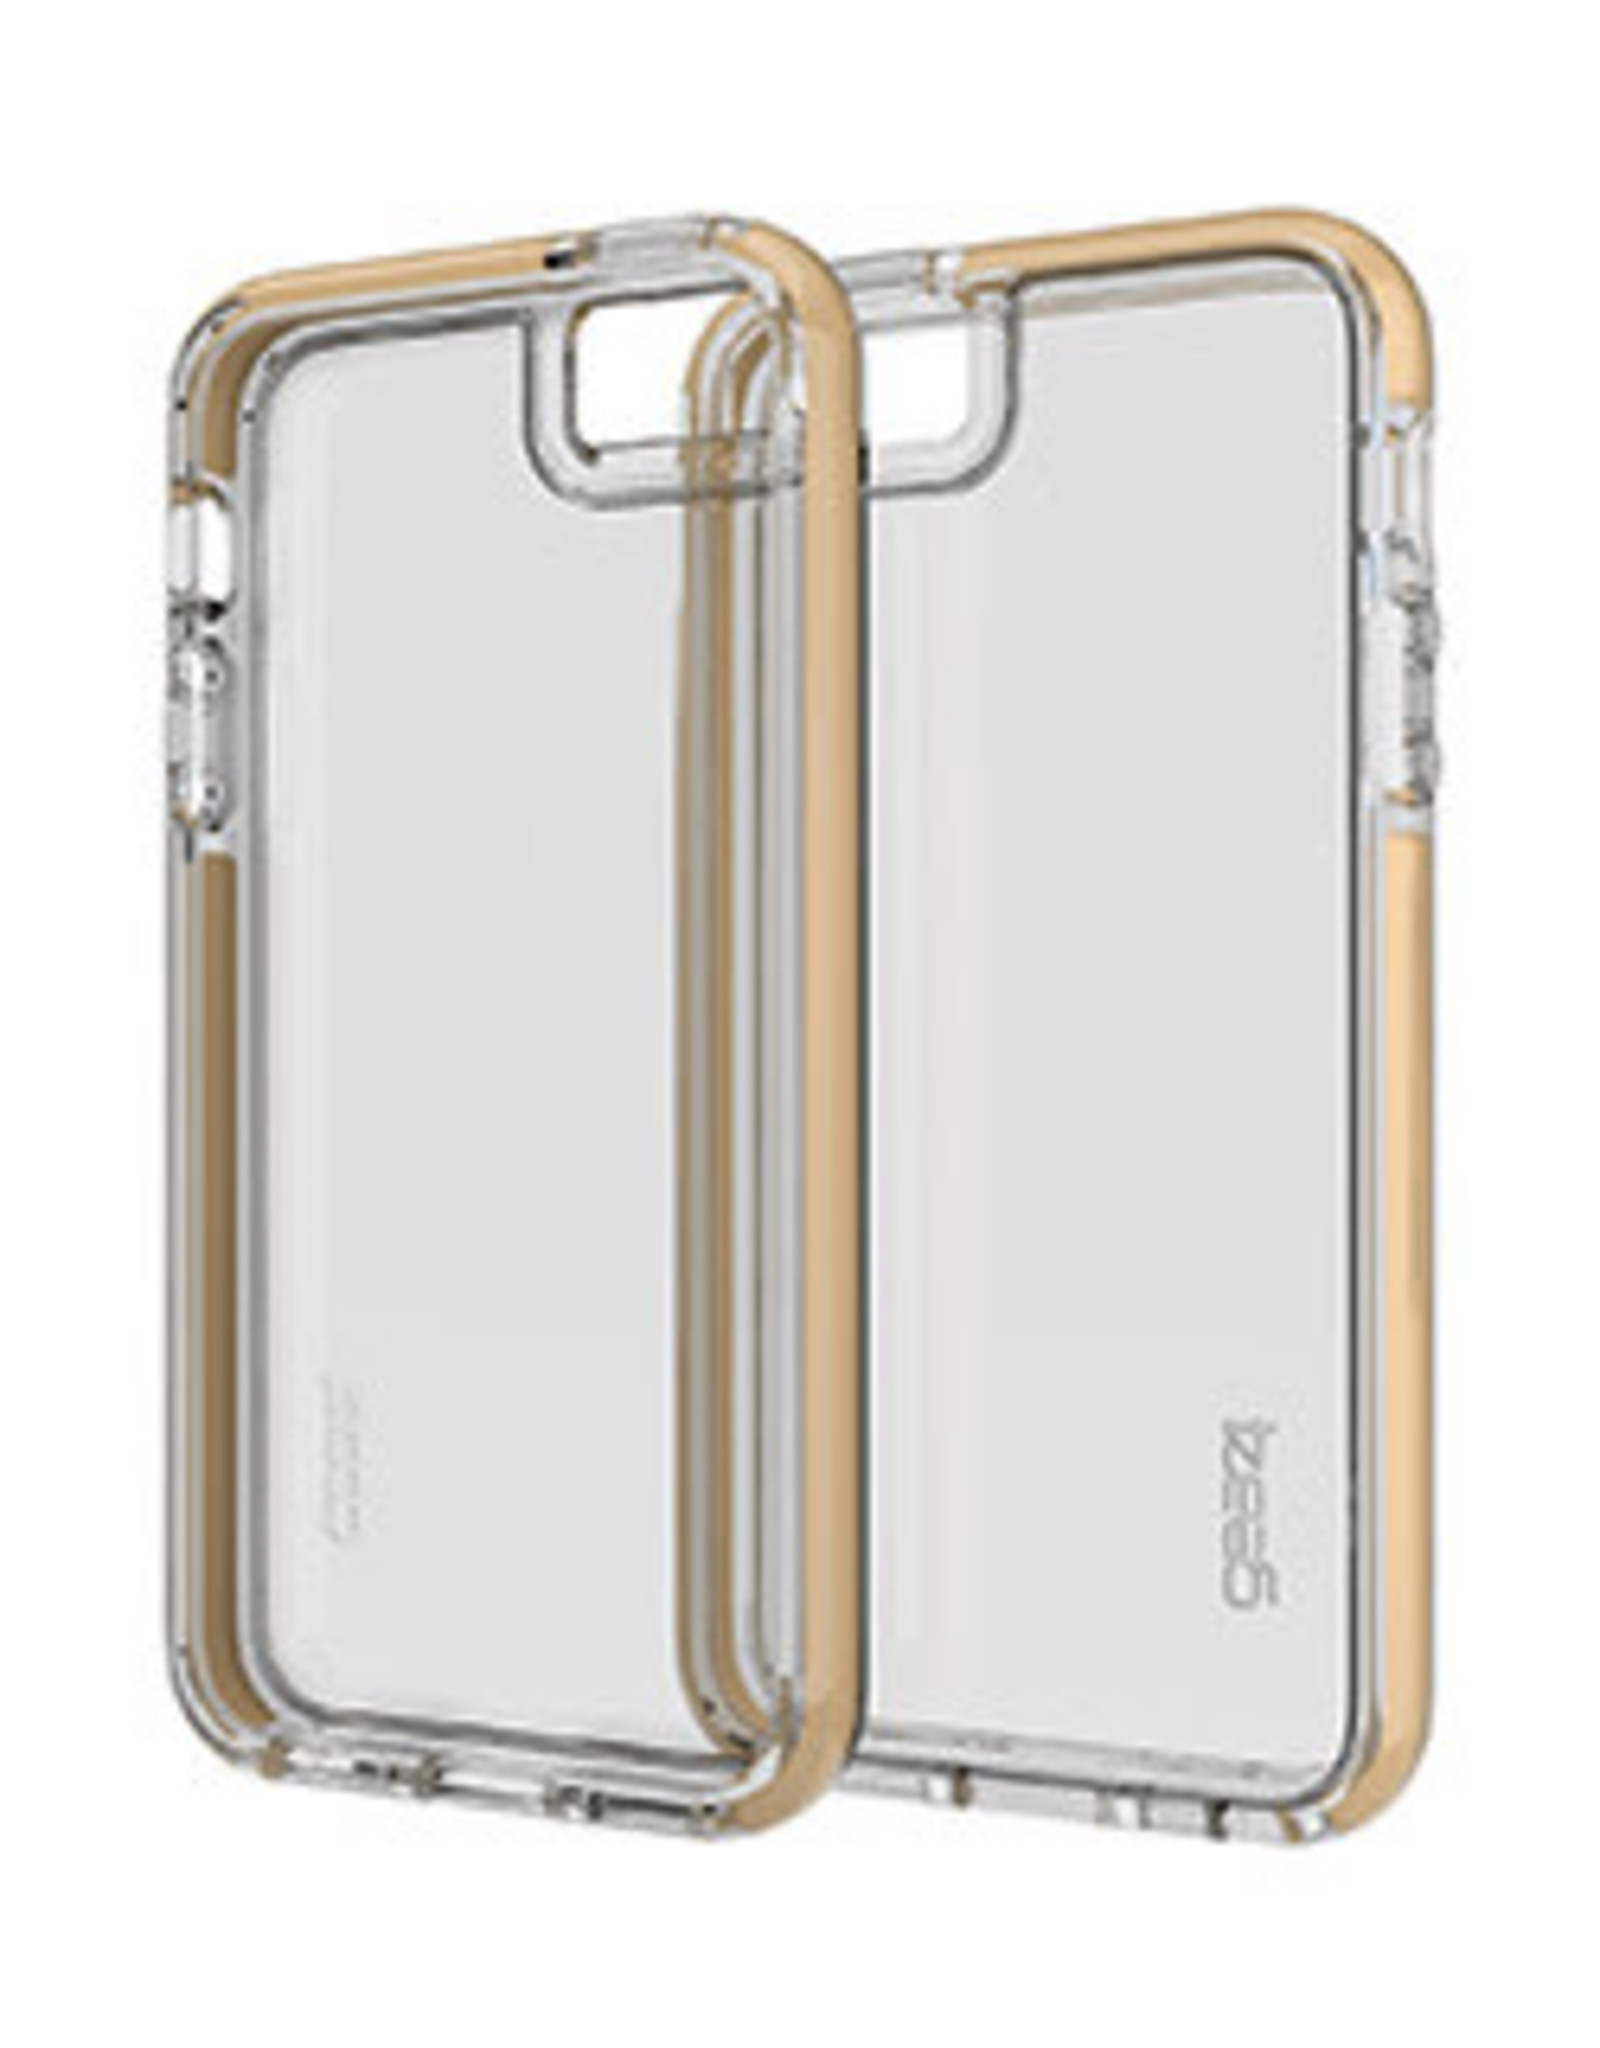 GEAR4 GEAR4 | iPhone 5/5S/SE D3O Clear Gold Piccadilly case | 15-00581